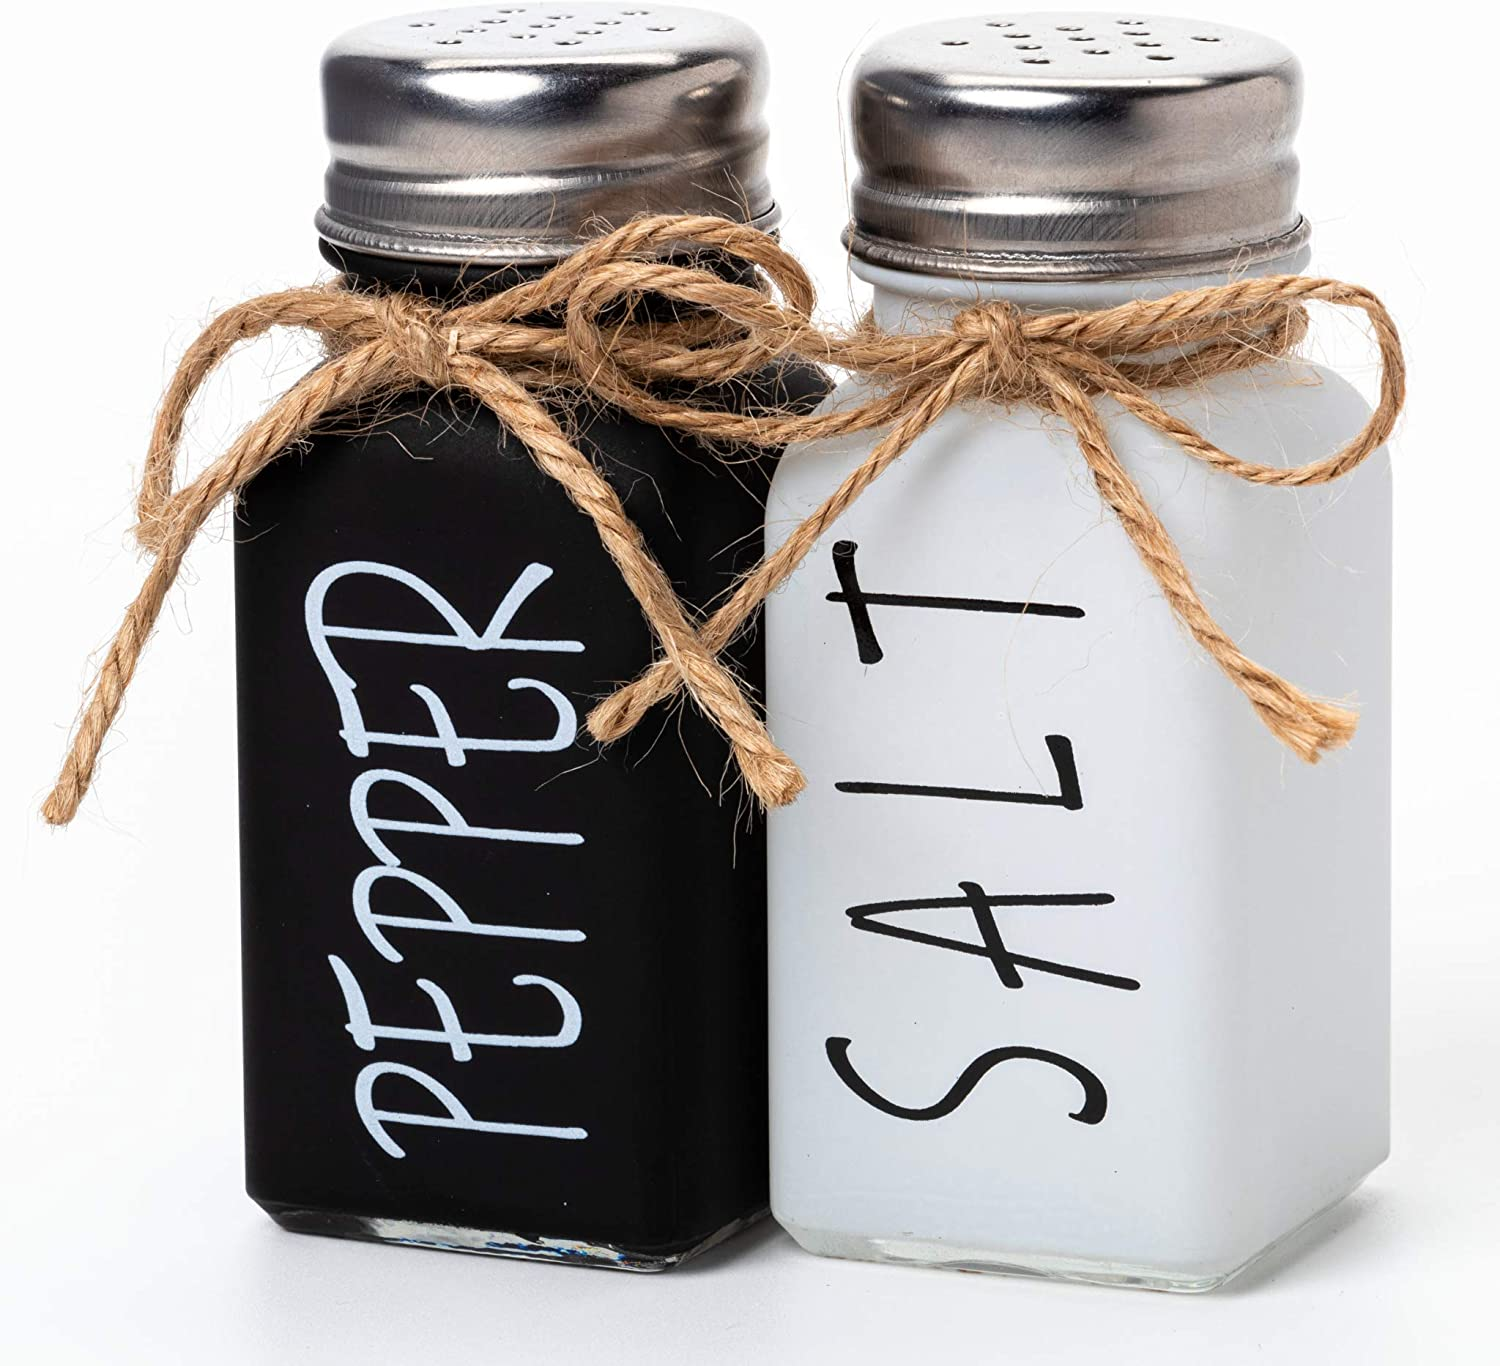 UrbanVillage Farmhouse Salt and Pepper Shakers Set - Cute Christmas Kitchen Counter Accessories - Mini Black White Shaker Seasoning Jars with Lids Rustic Decor for Dinnerware or Country Style Wedding